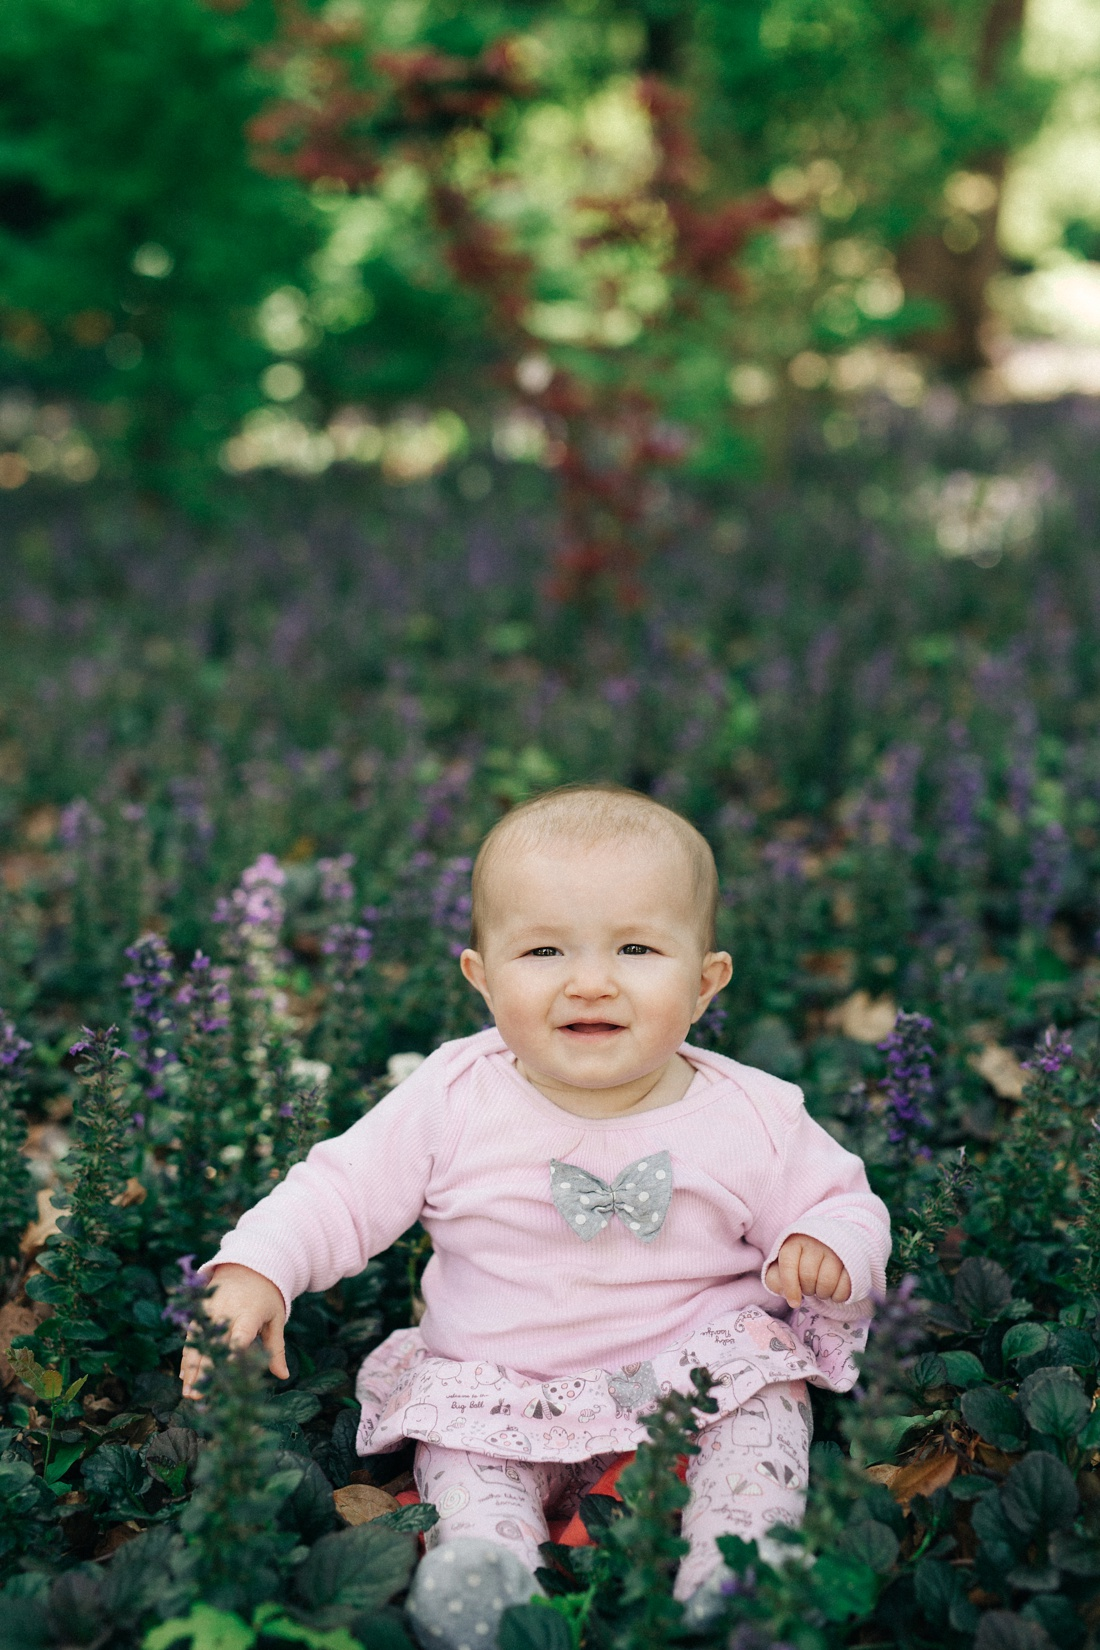 an Image taken by Vividblue of a baby girl siting in-between purple flowers.